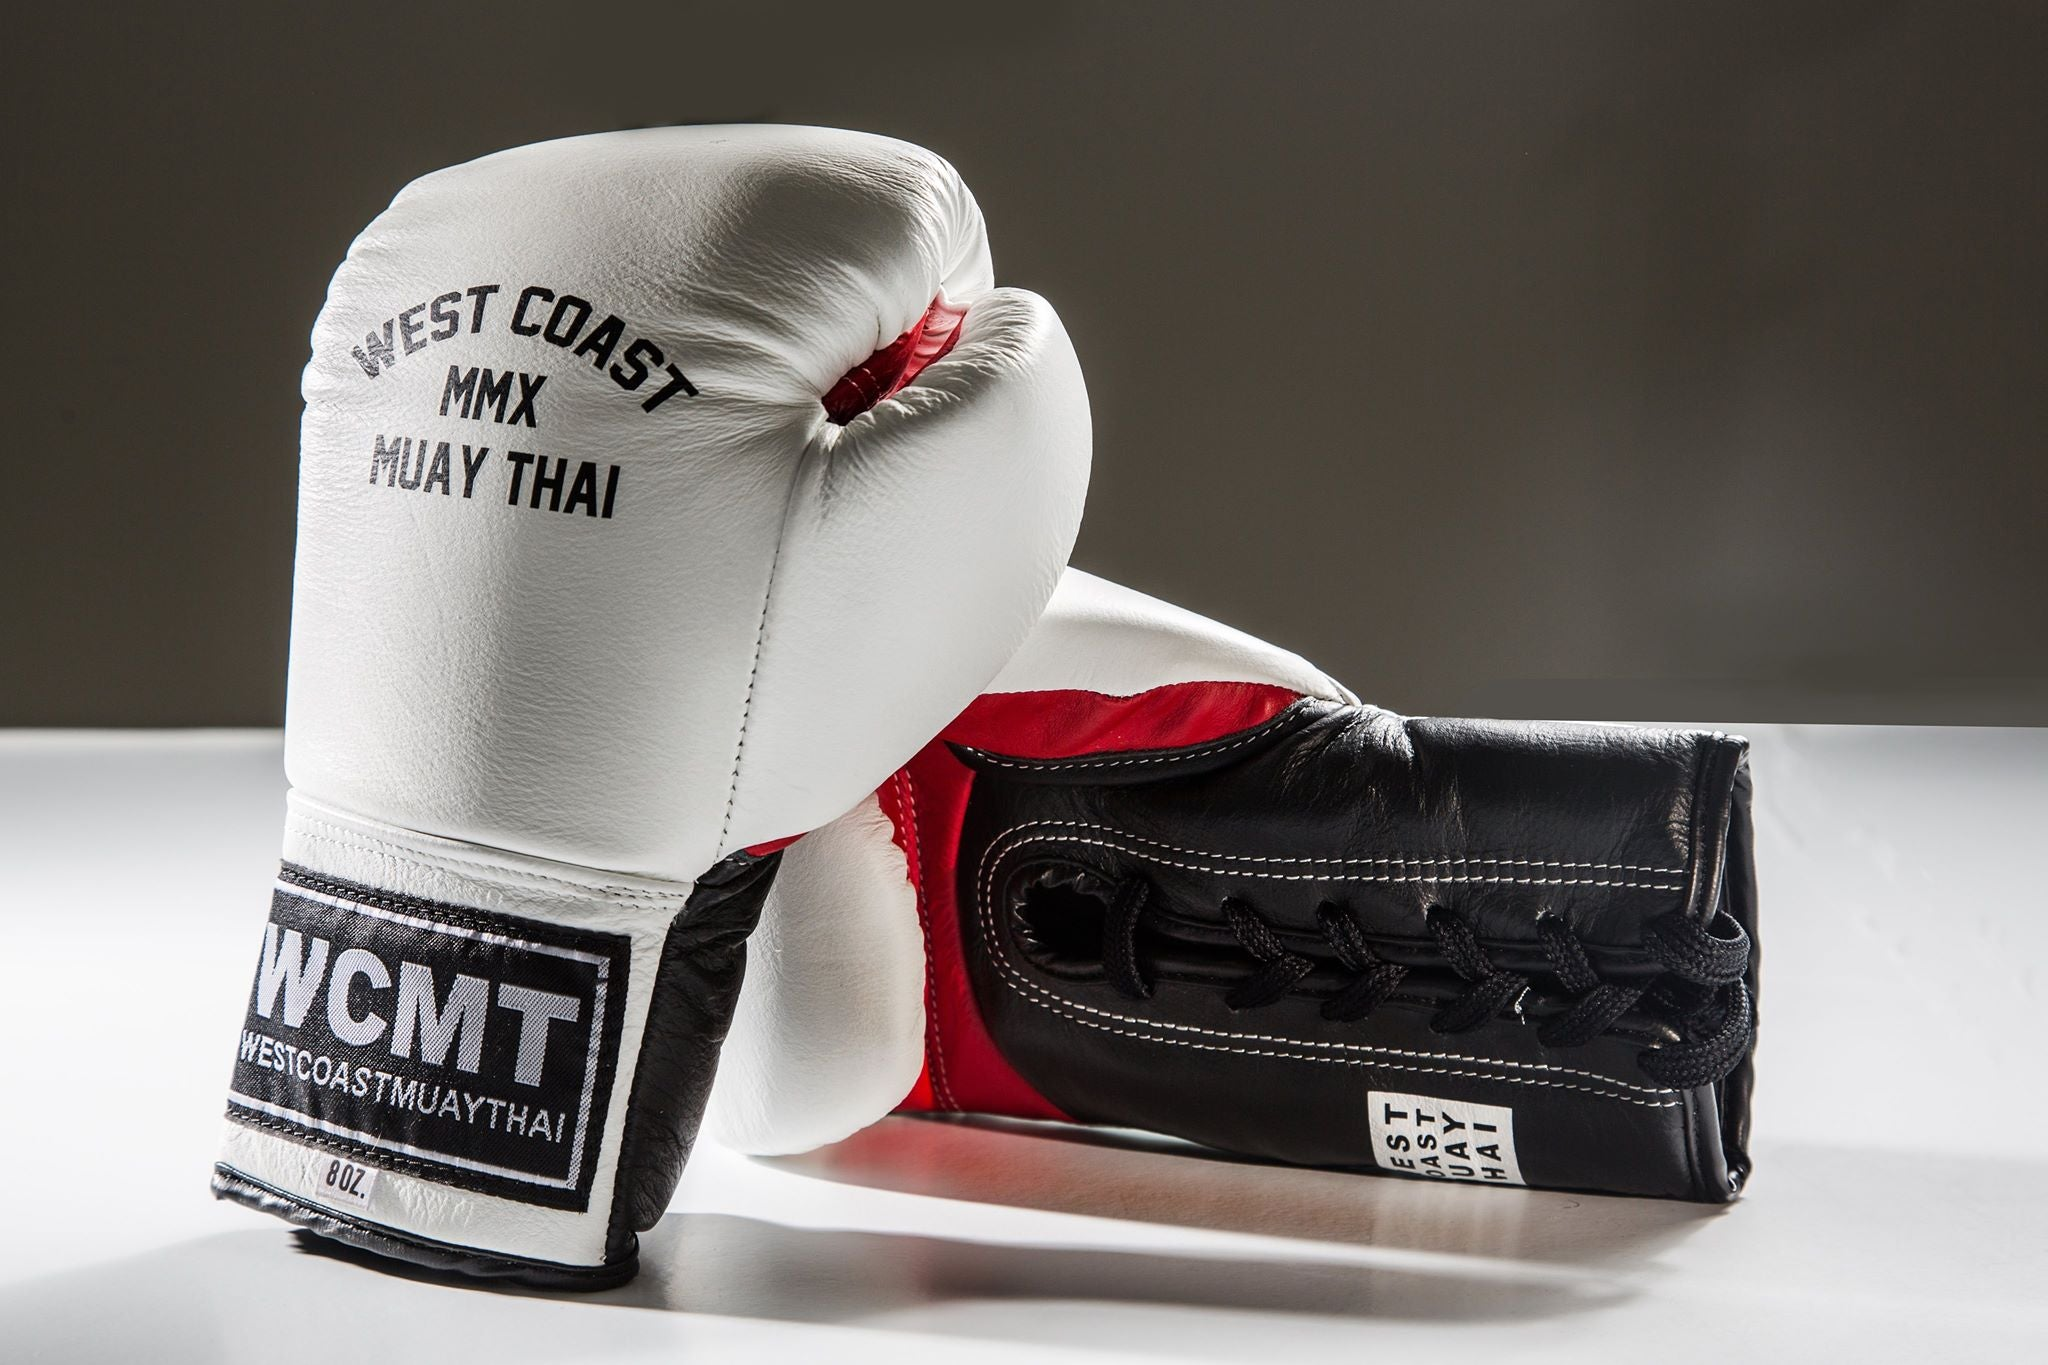 RESTOCKED - WCMT Boxing Gloves